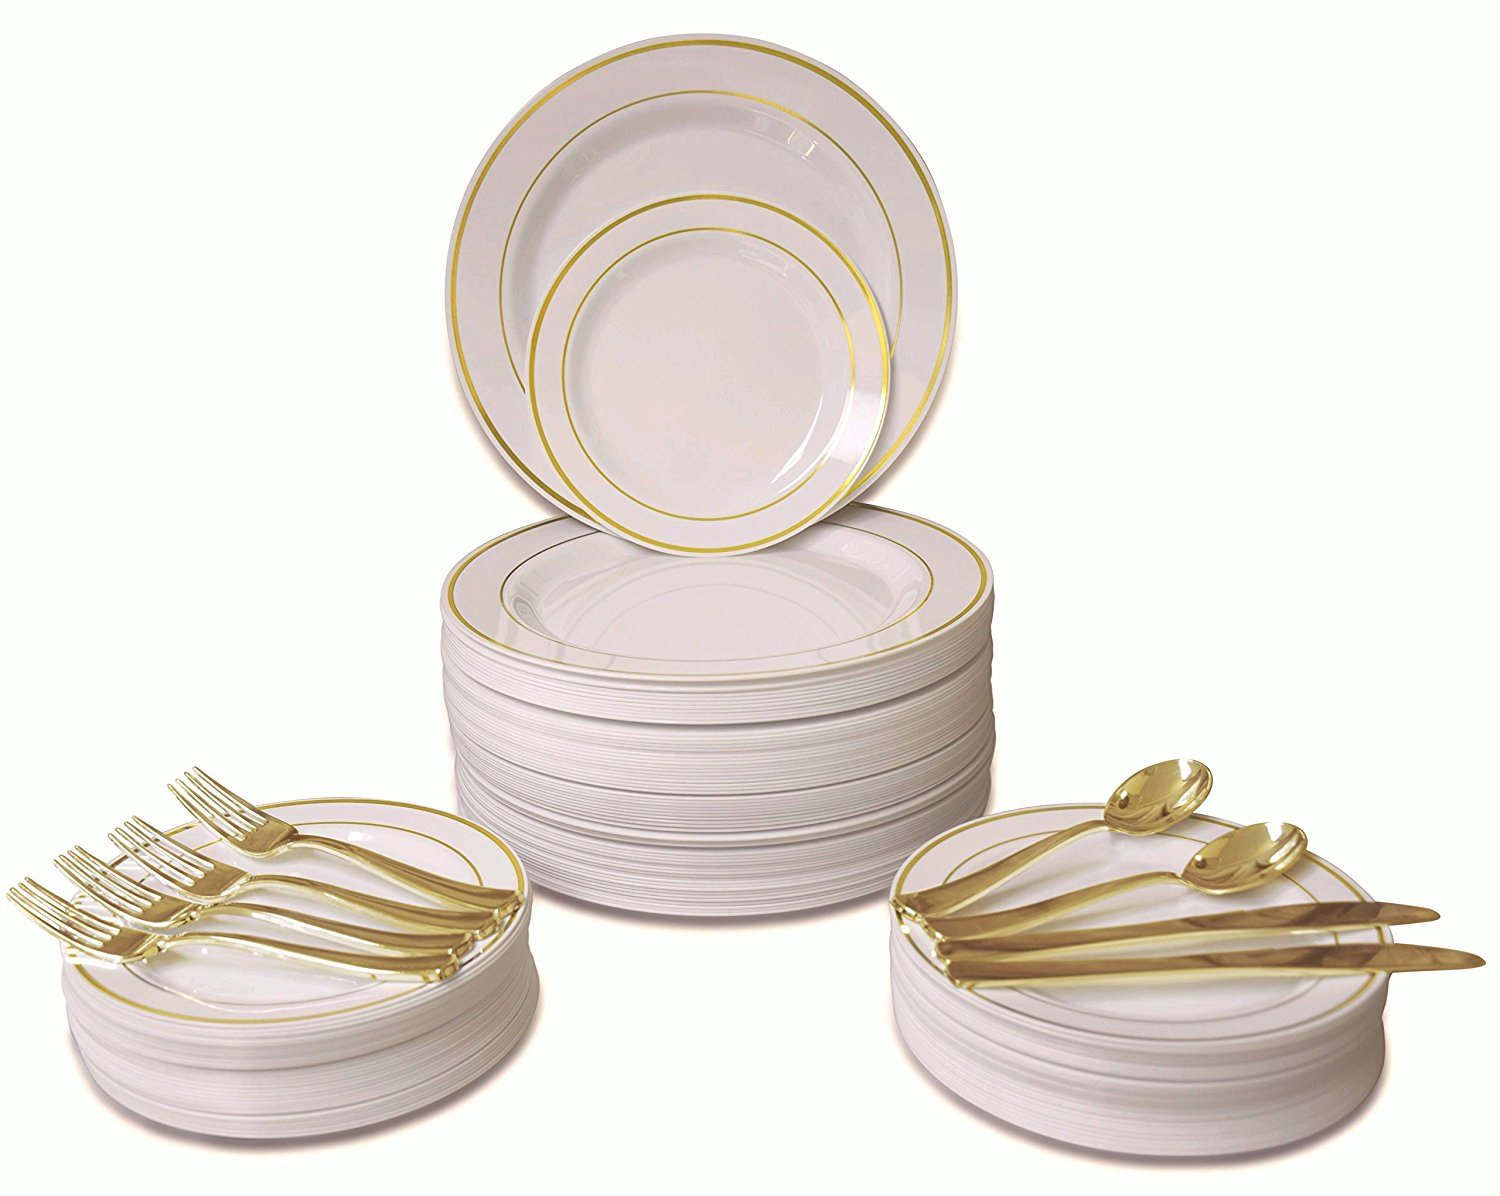 Best Heavy Duty Plastic Plates for a Wedding  sc 1 st  Best Heavy Duty Stuff & Best Heavy Duty Plastic Plates for Weddings - Best Heavy Duty Stuff